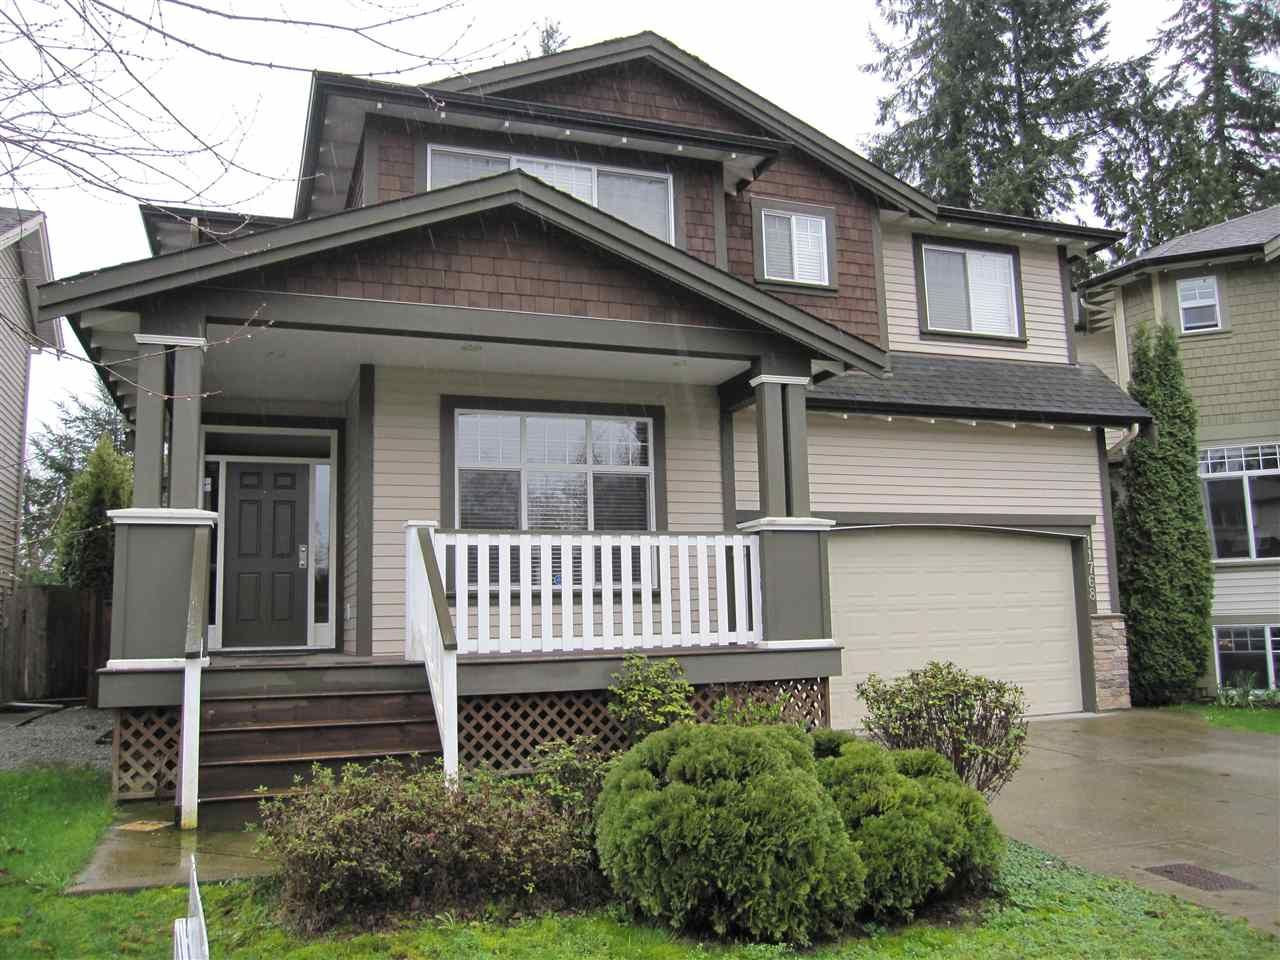 Main Photo: 11768 237A Street in Maple Ridge: Cottonwood MR House for sale : MLS®# R2044375